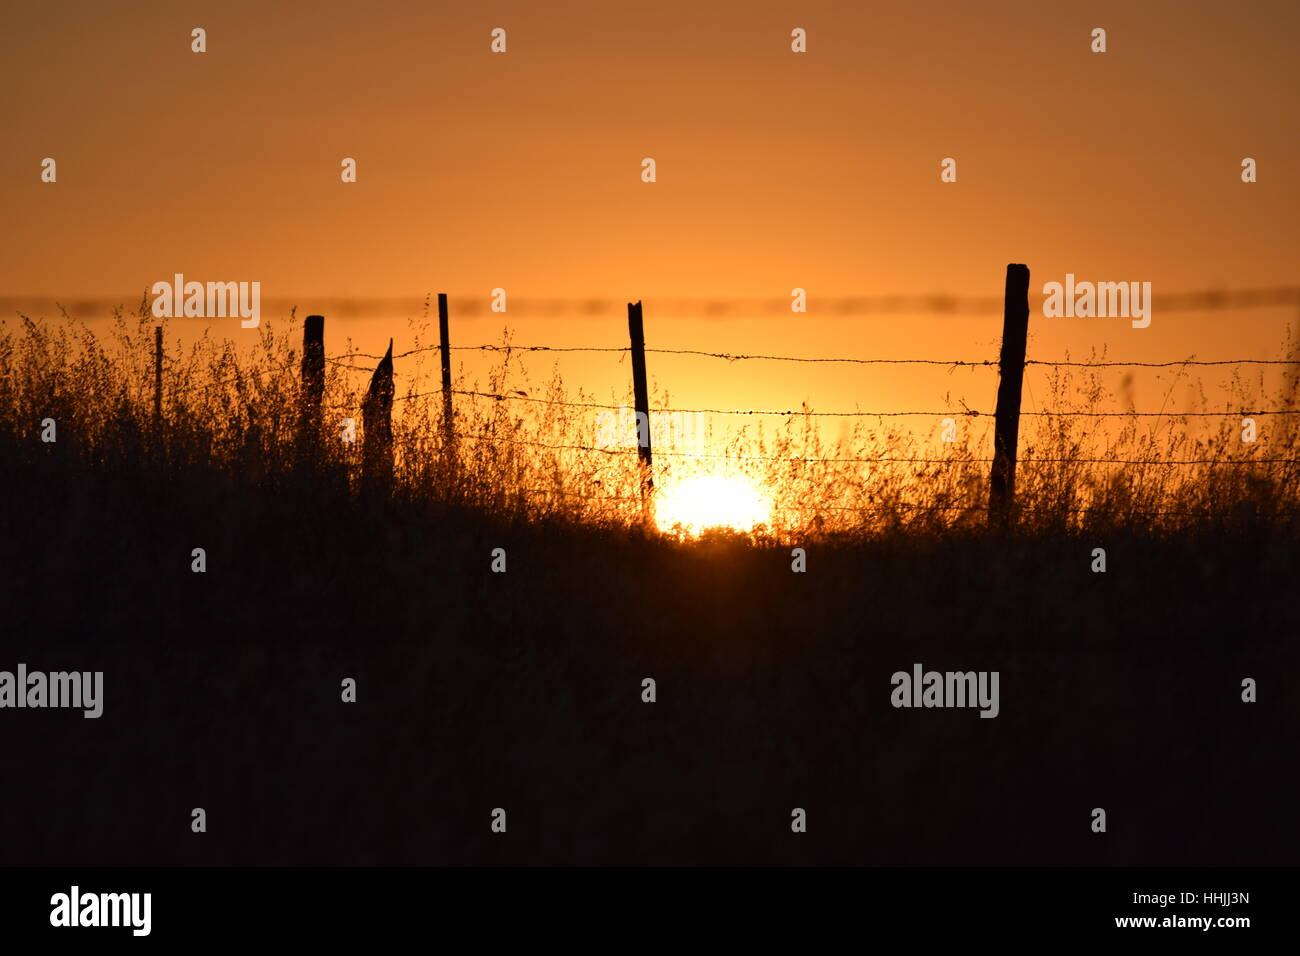 A barbed-wire fence and tall grass silhouetted by the setting sun - Stock Image